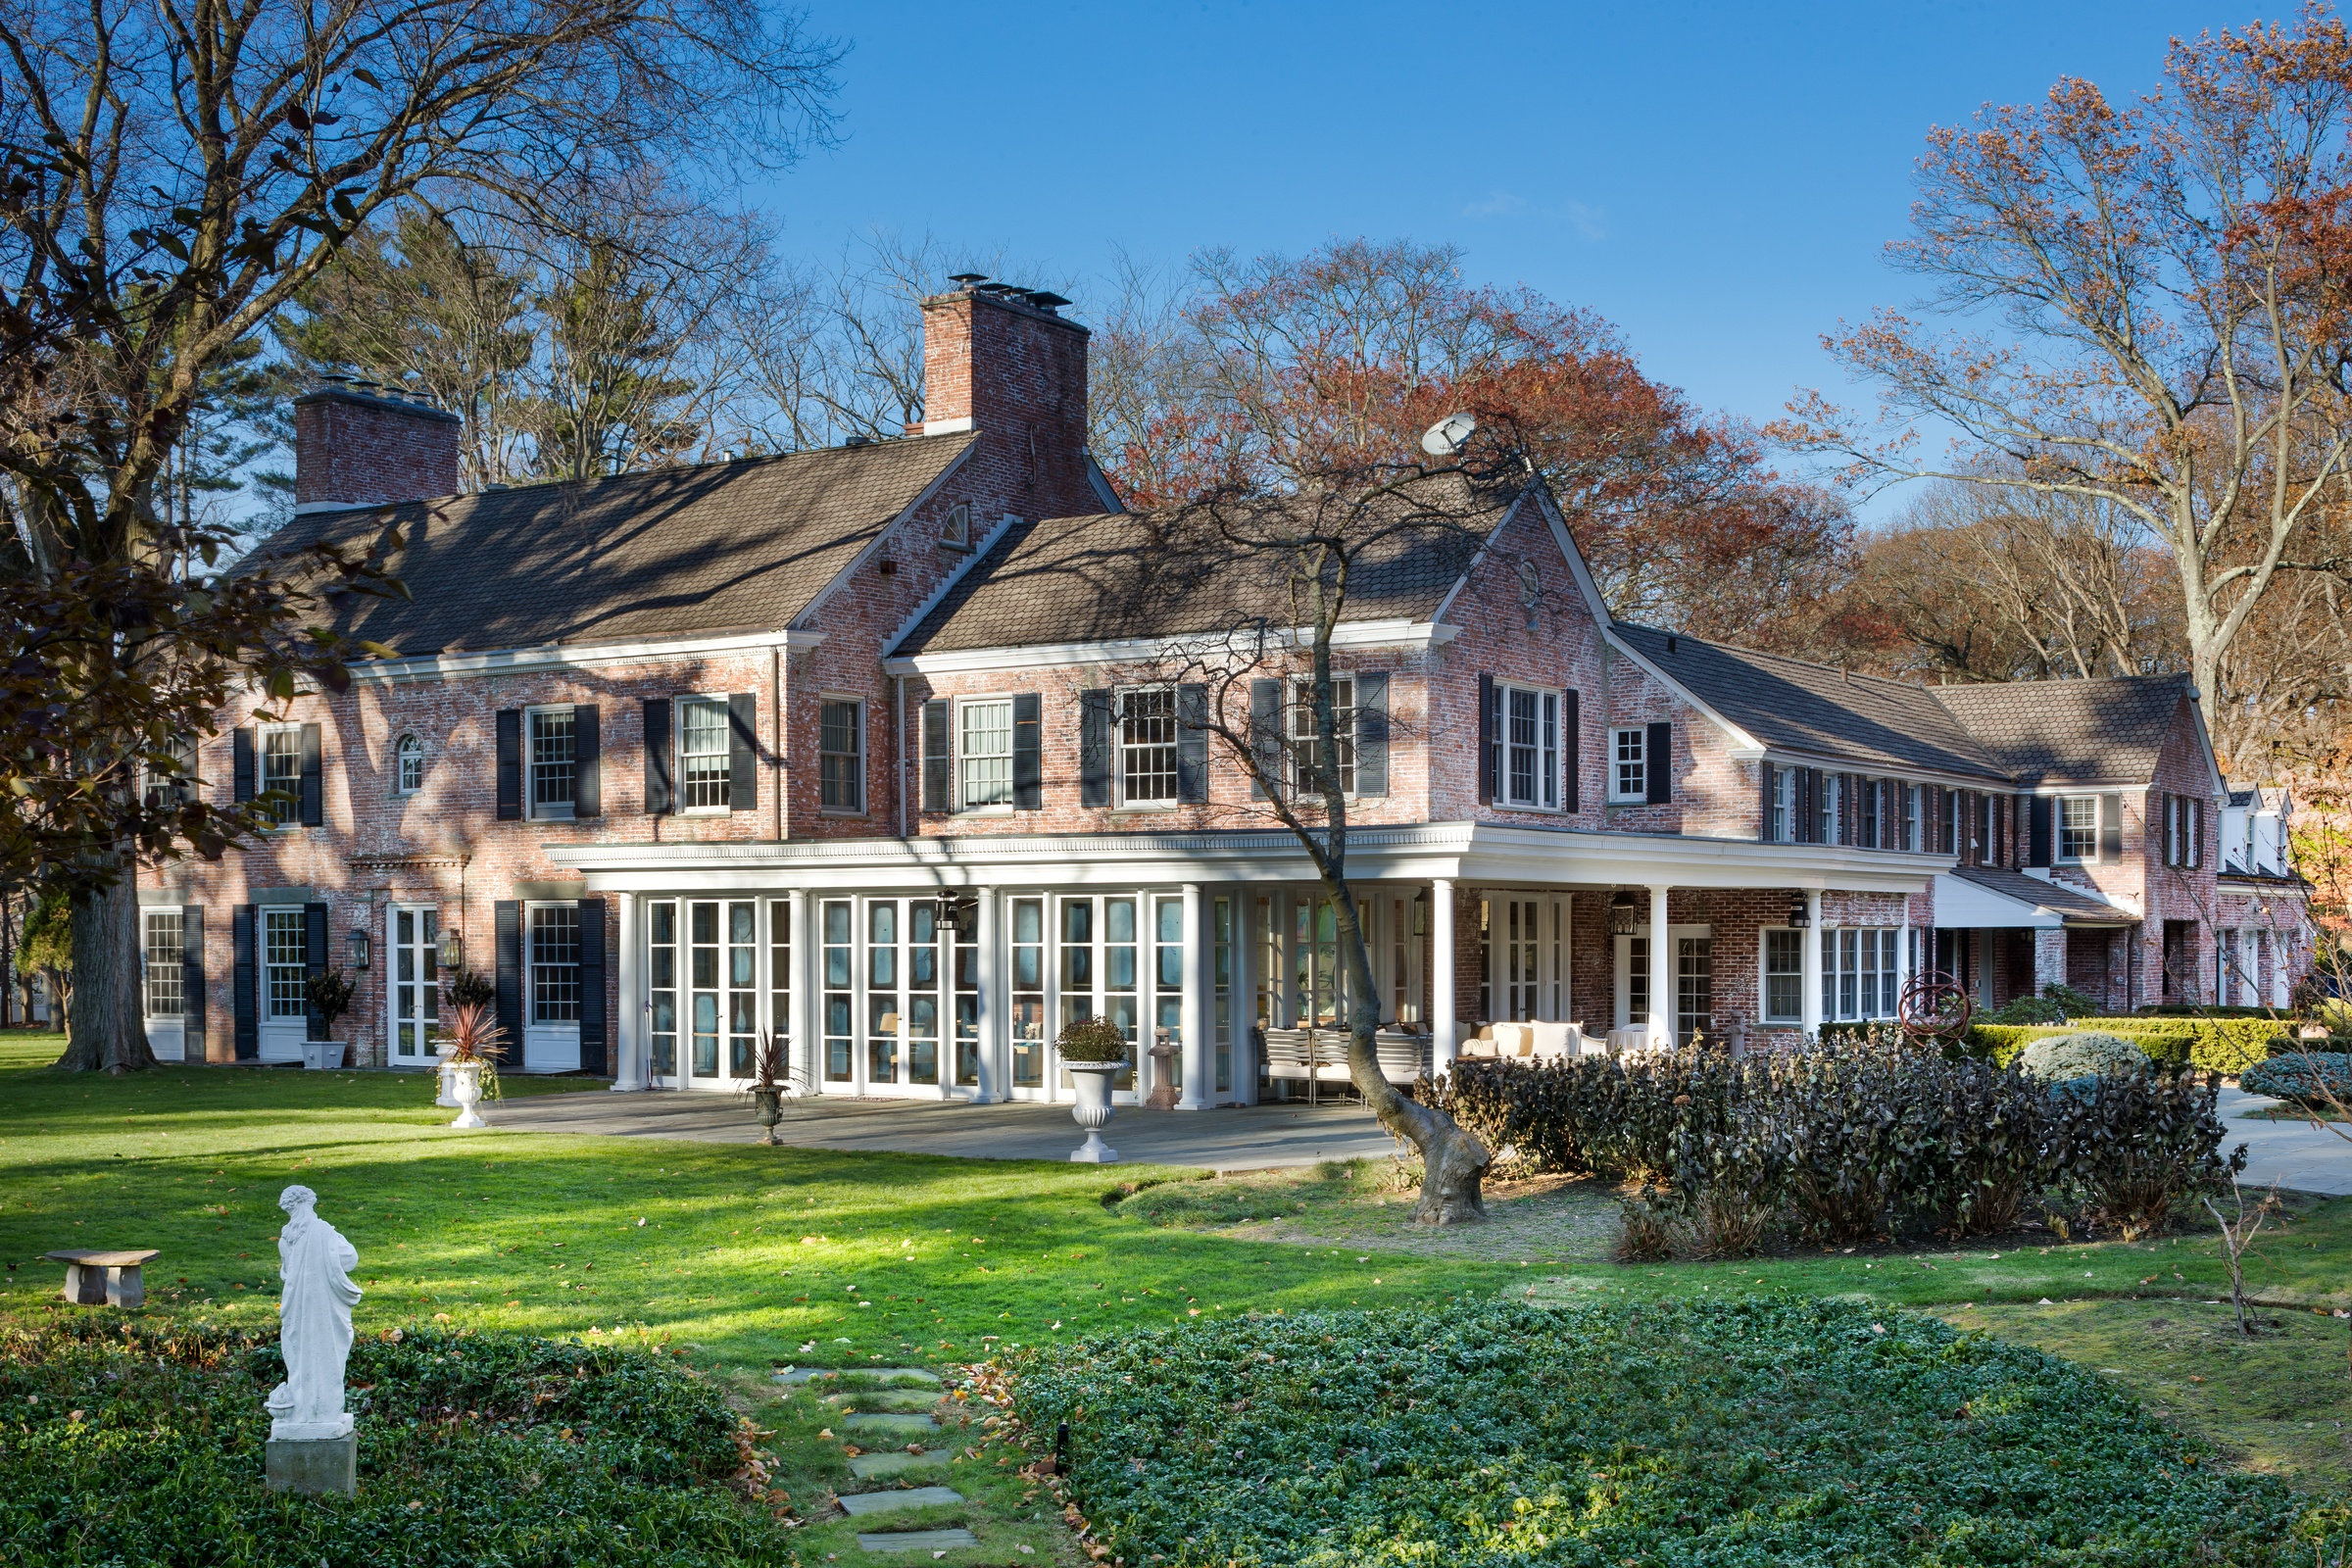 Update marc anthony drops price on long island estate by for Long island estates for sale